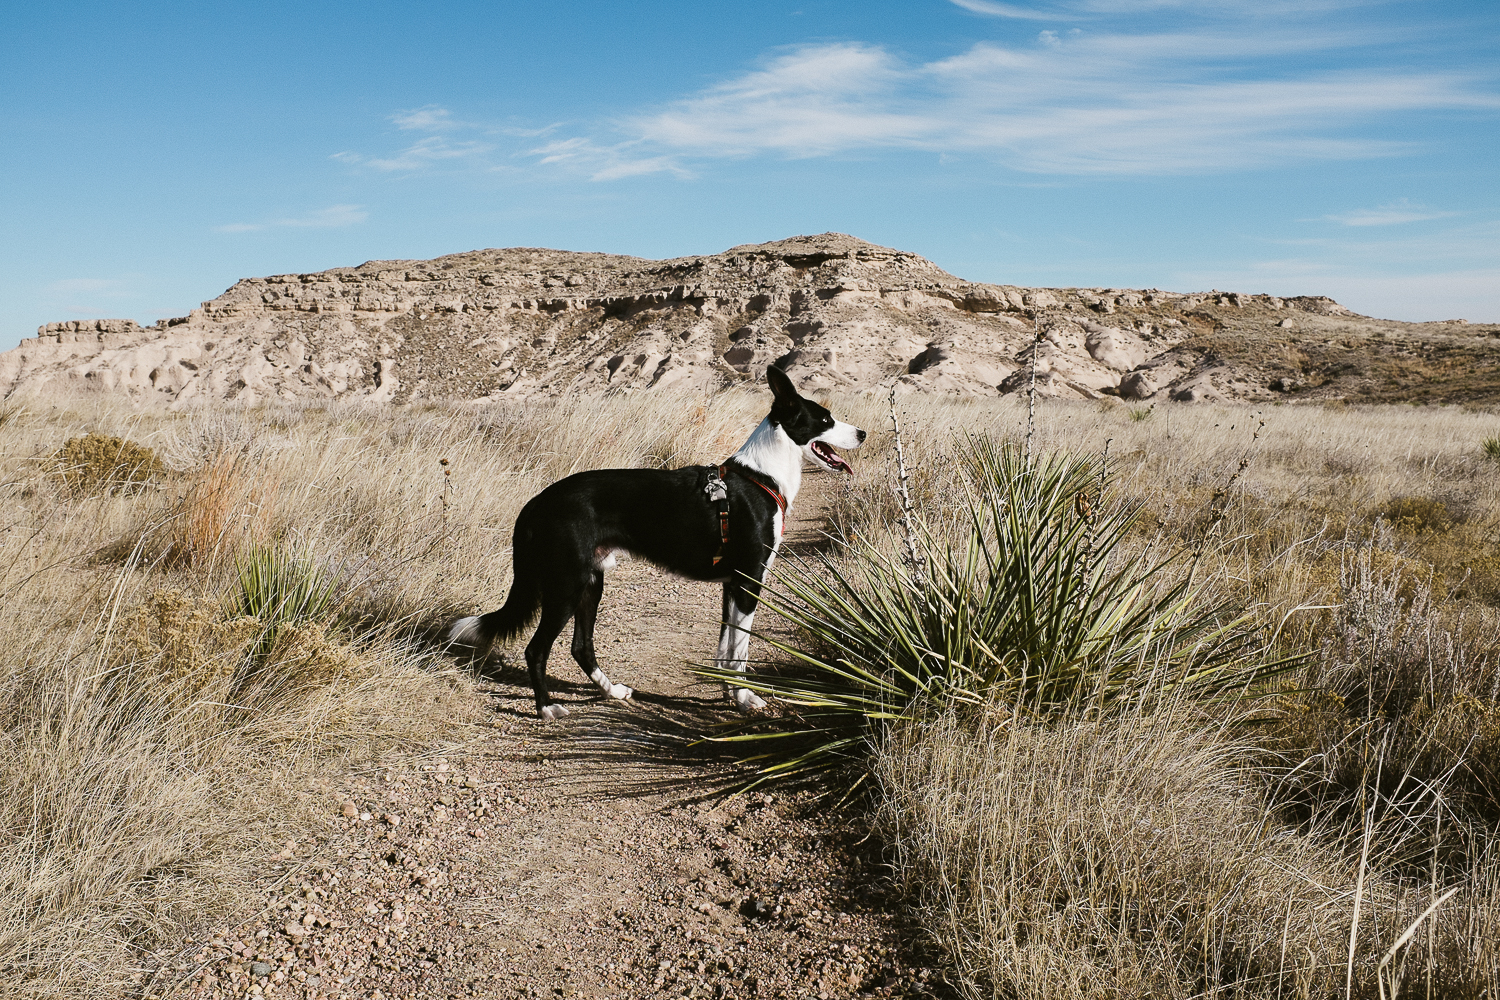 hiking with dogs at pawnee buttes colorado 006.jpg